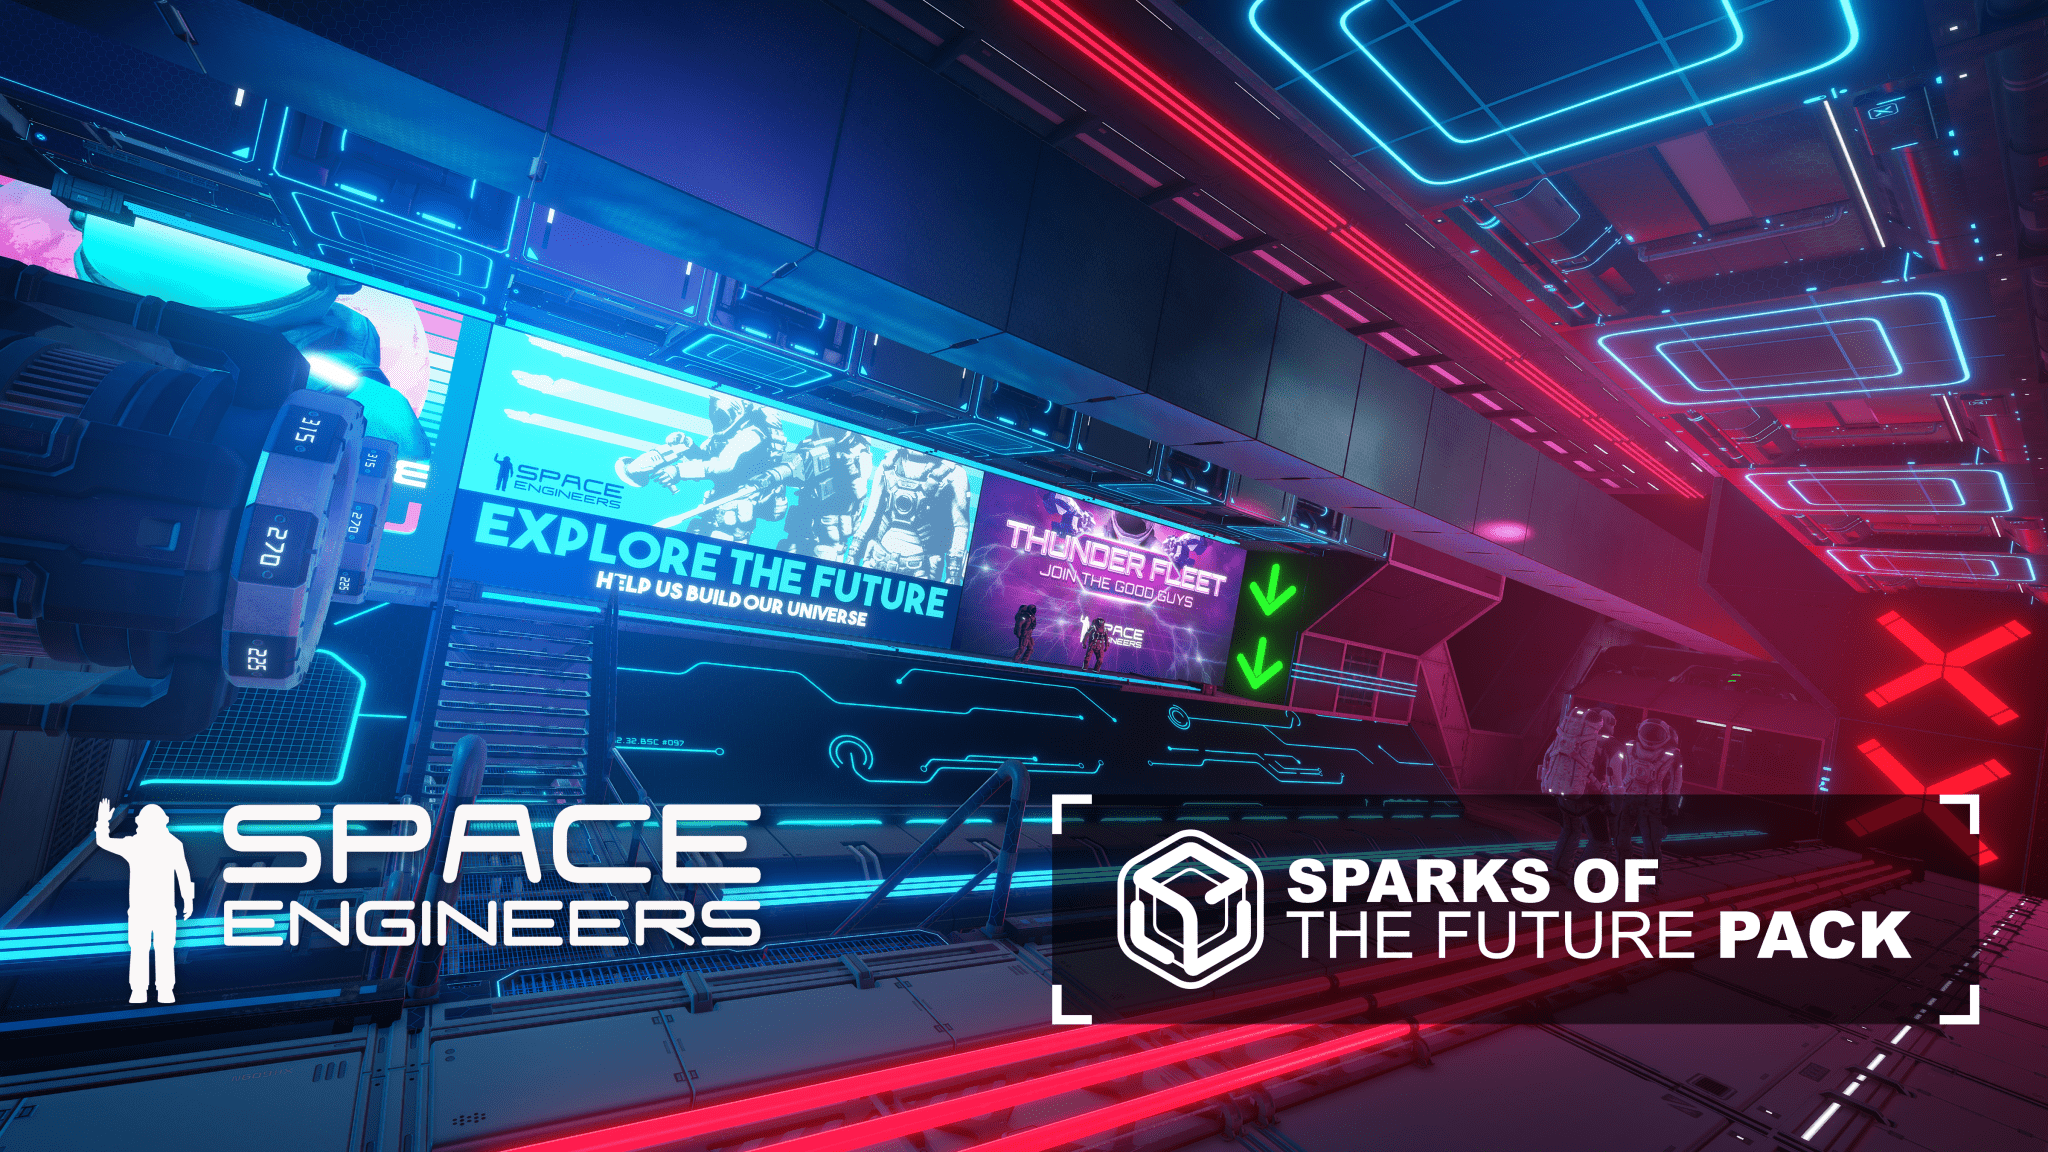 Space Engineers - Sparks of the Future